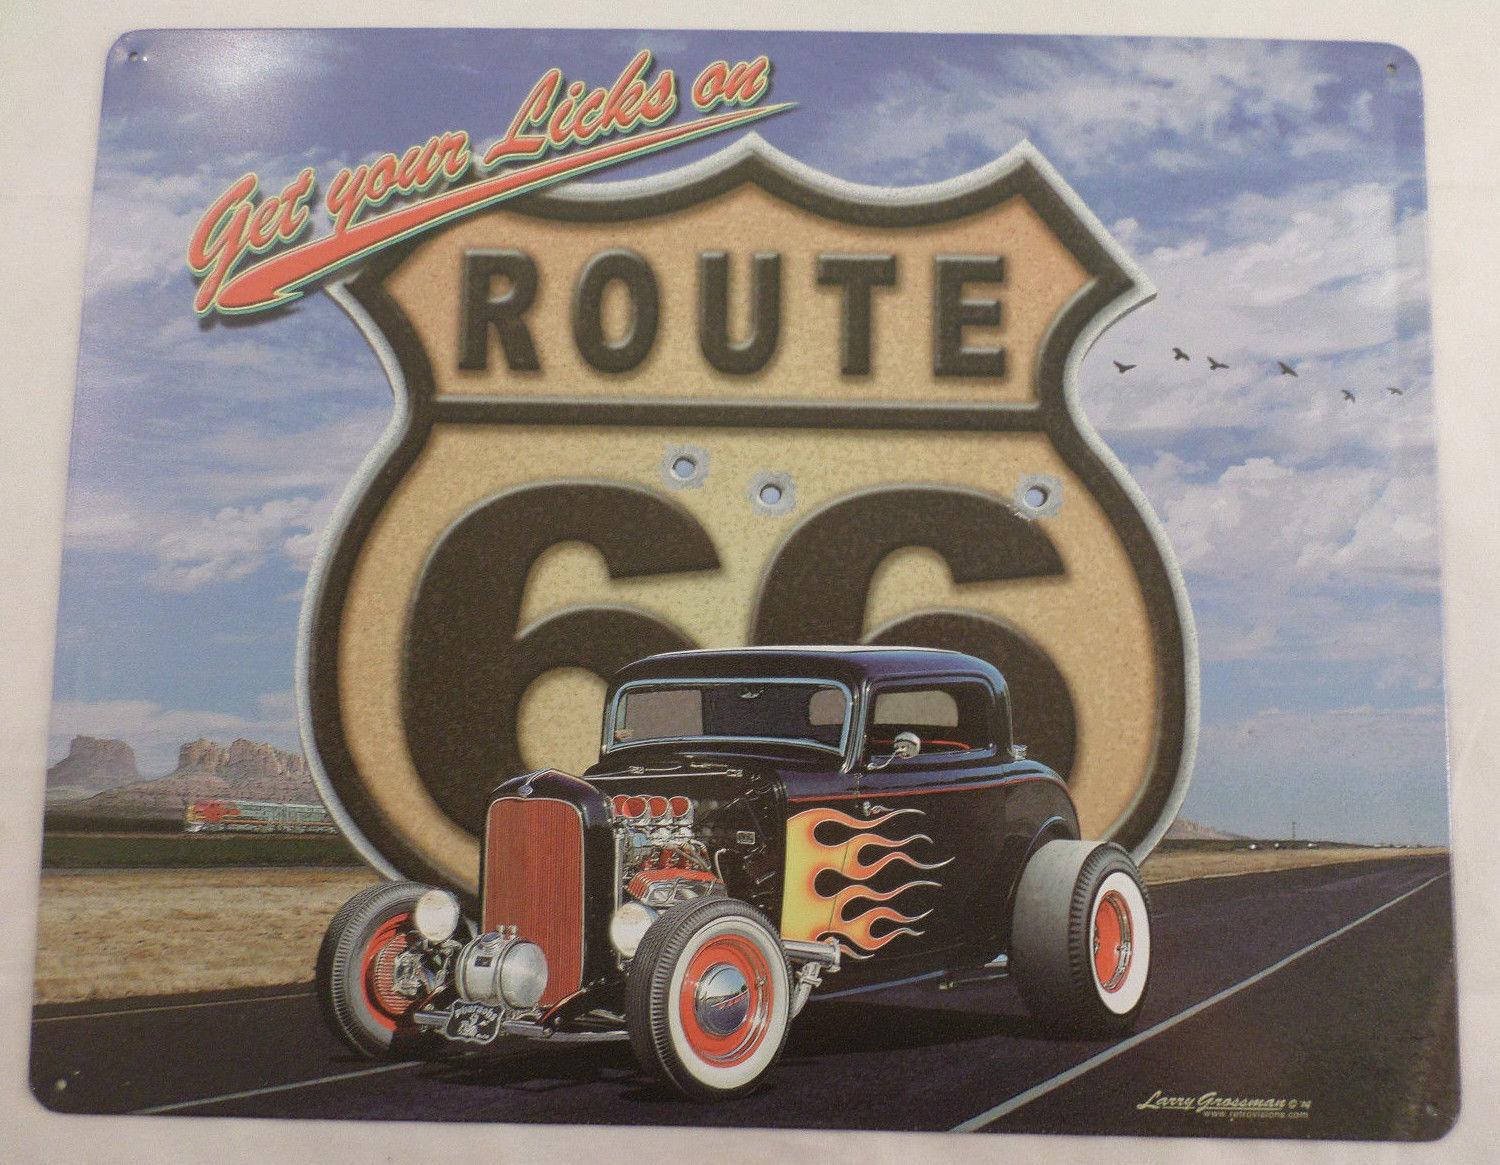 Get Your Licks On Route 66 Hot Rod Car Garage Bar Man Cave